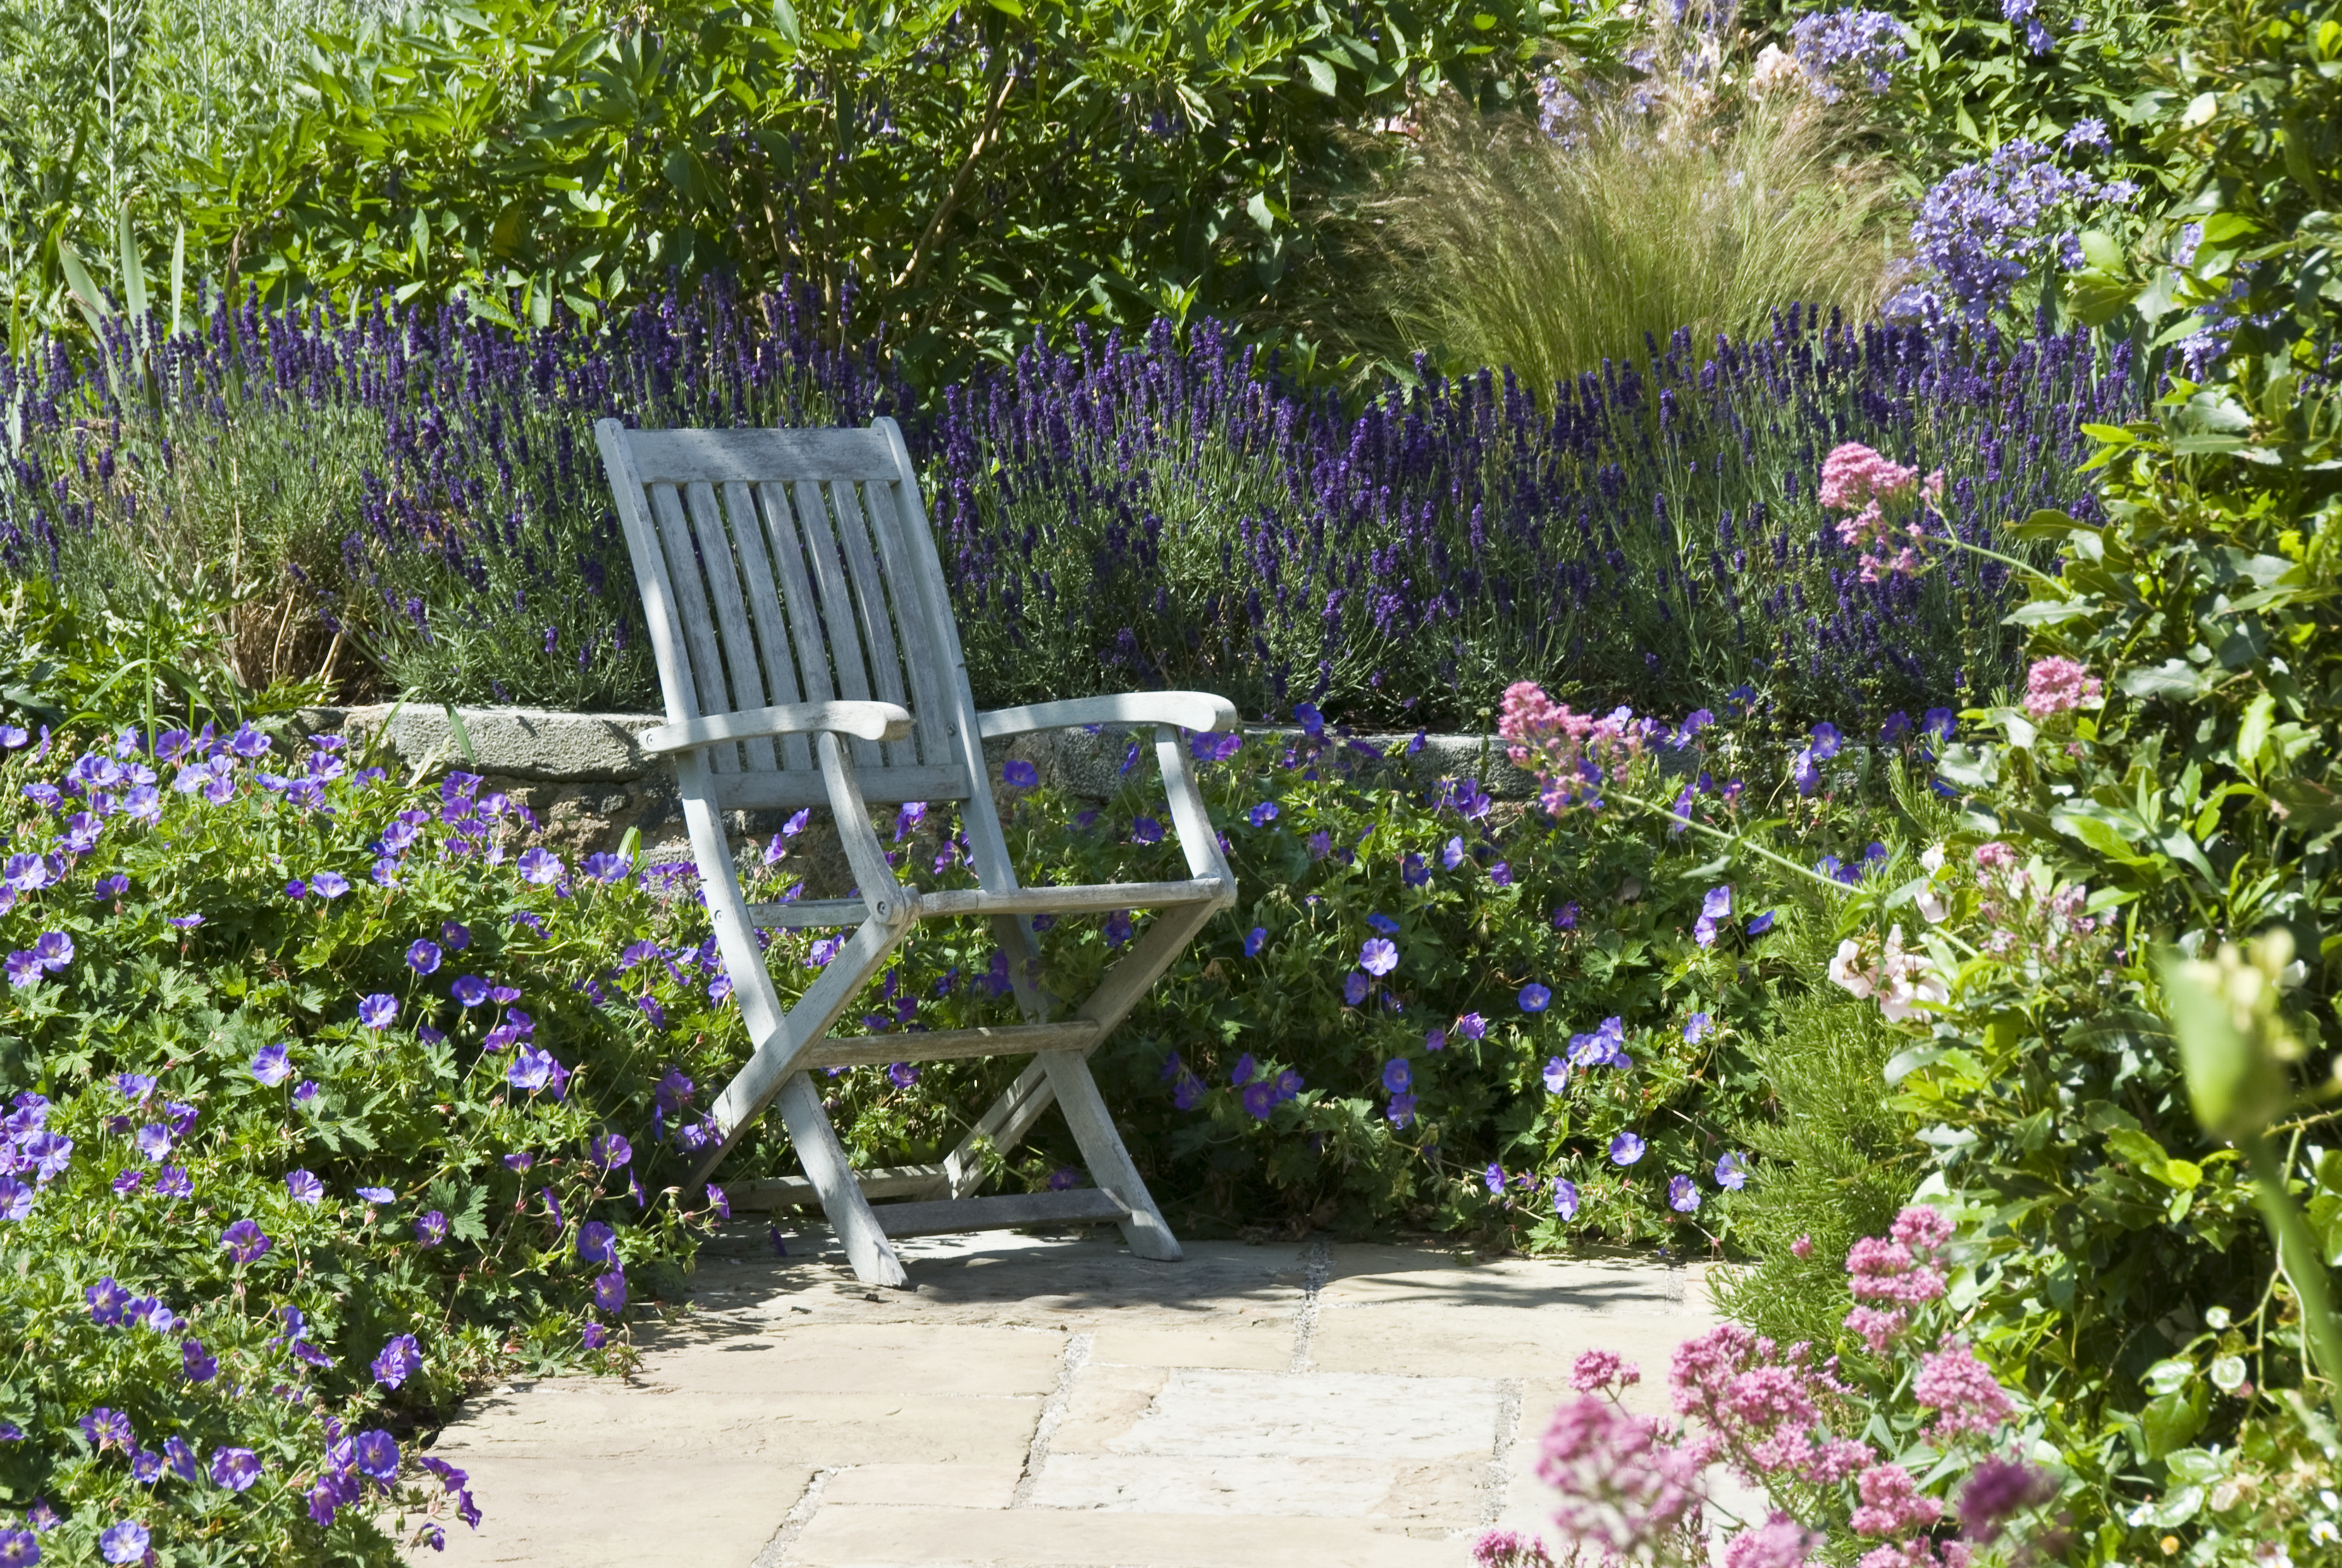 Acres Wild Guernsey Garden Chair in Planting